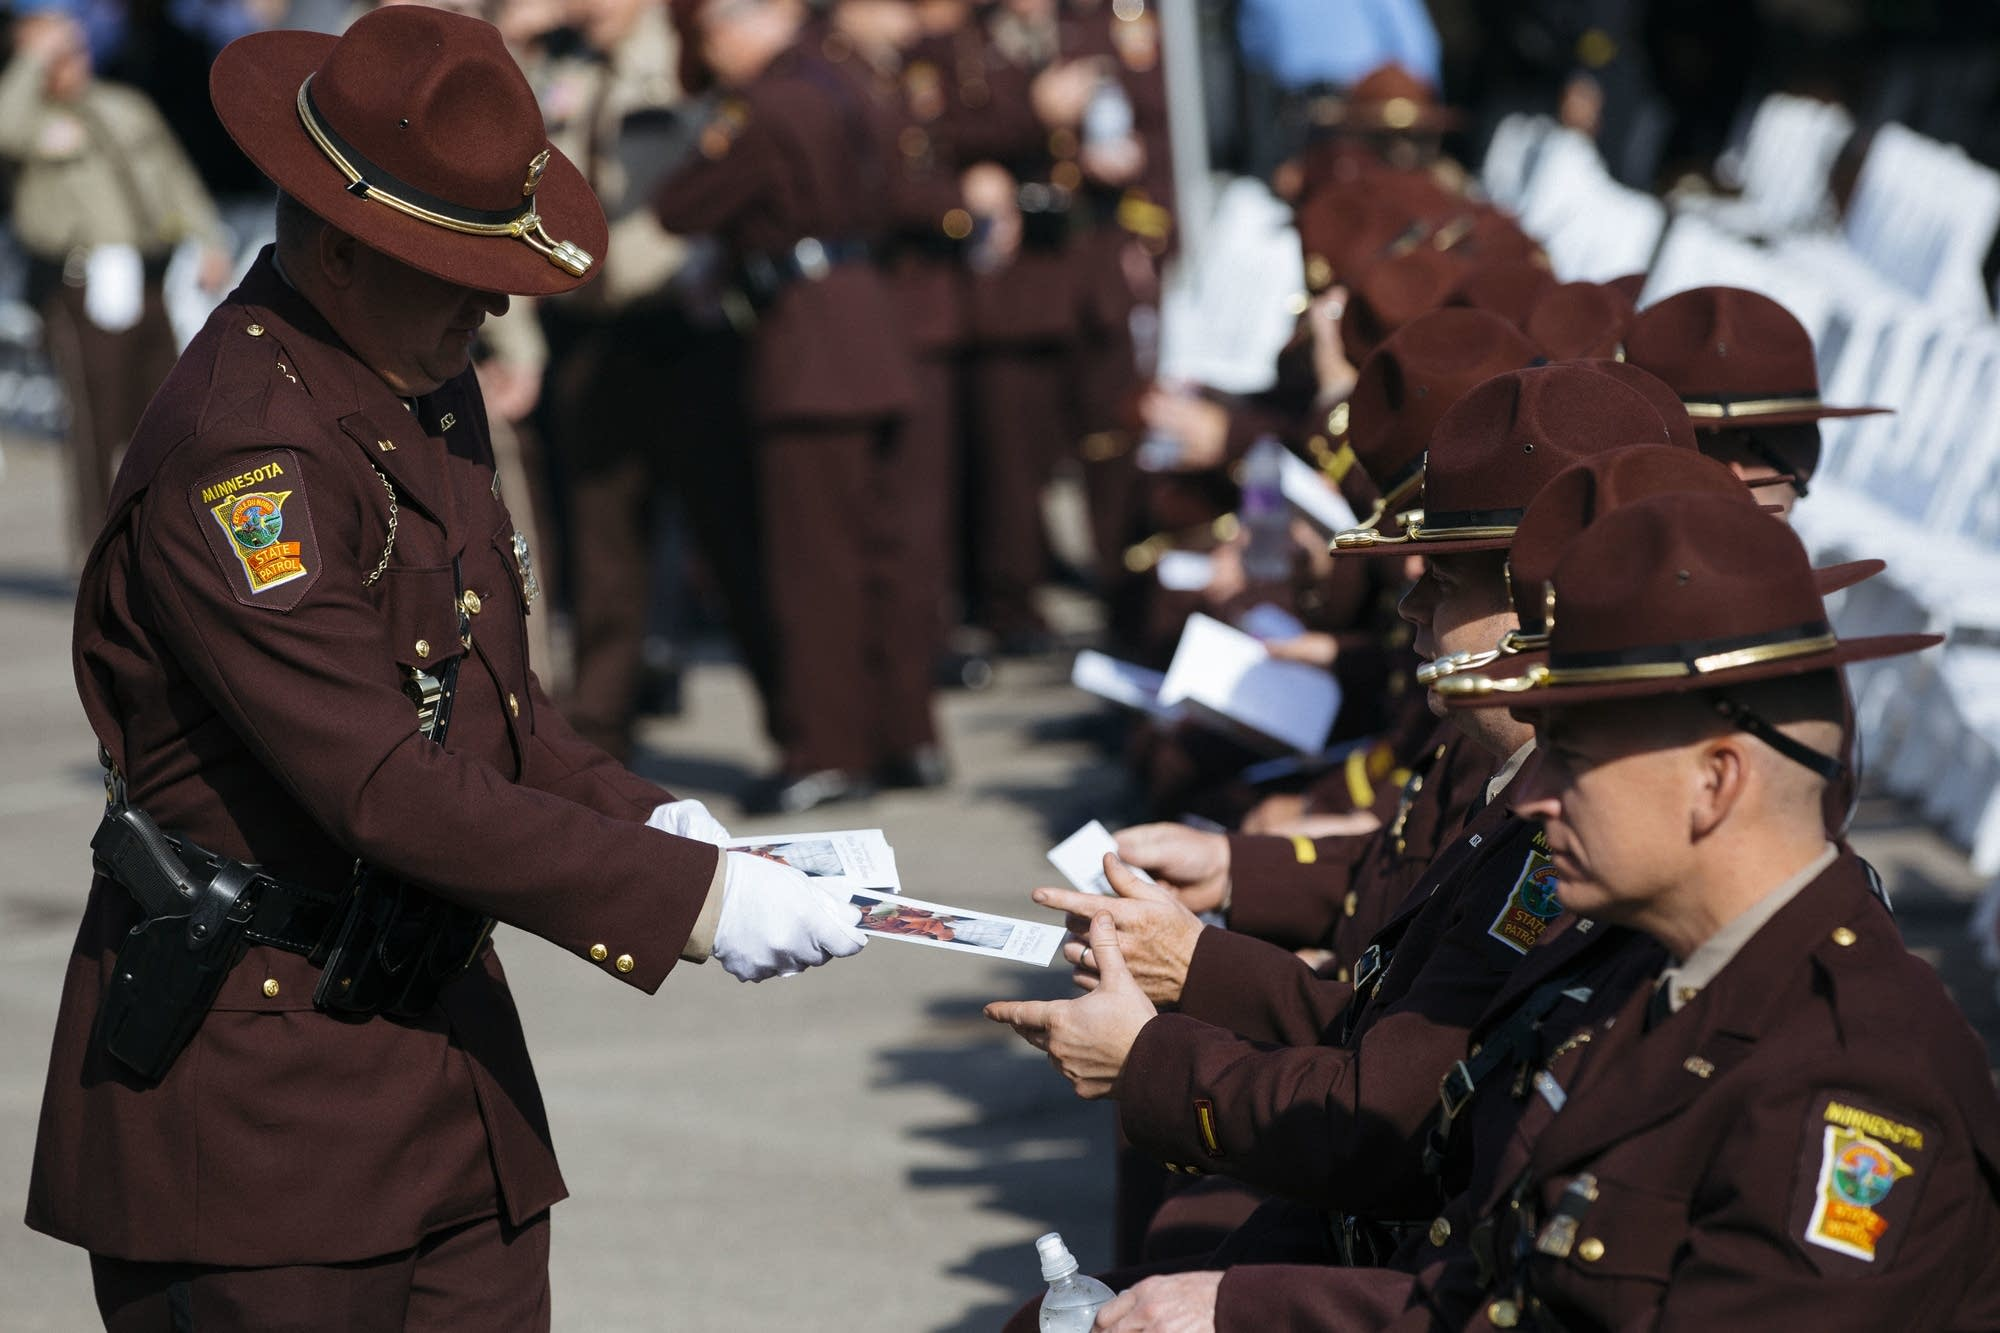 A Minnesota State Patrol officer hands out funeral programs.